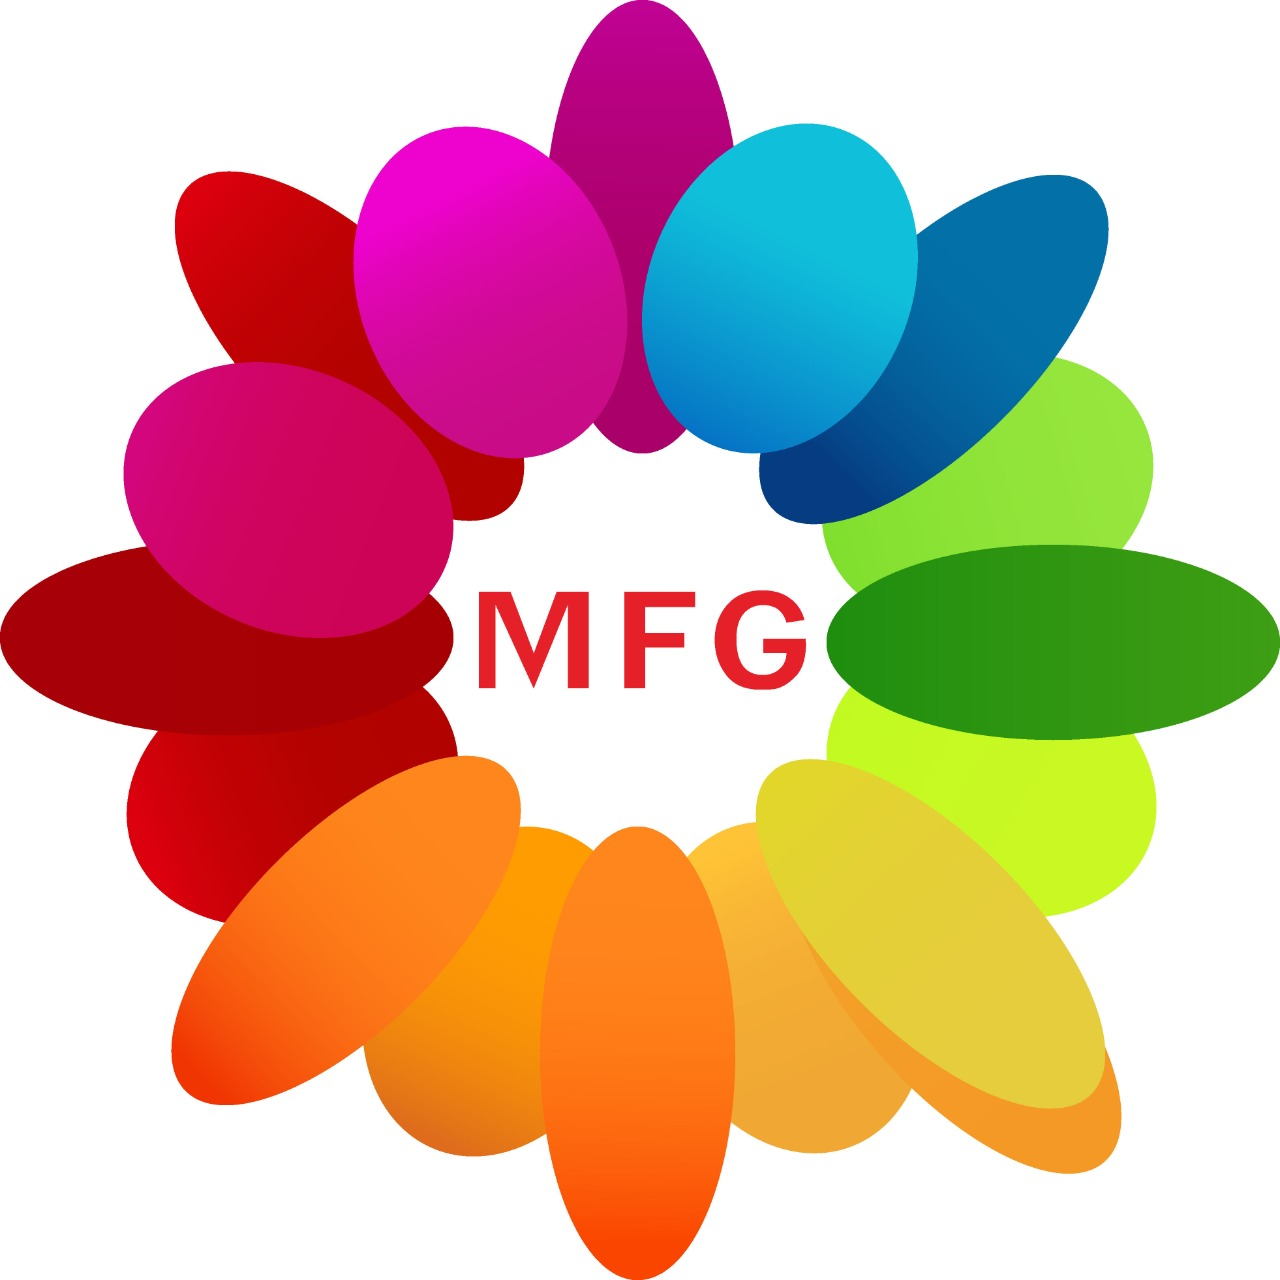 1 kg heart shape vanilla cake with assorted chocolate hamper of premium chocolates with 3 feet height teddy bear carrying 24 pcs rocher ferrero chocolates